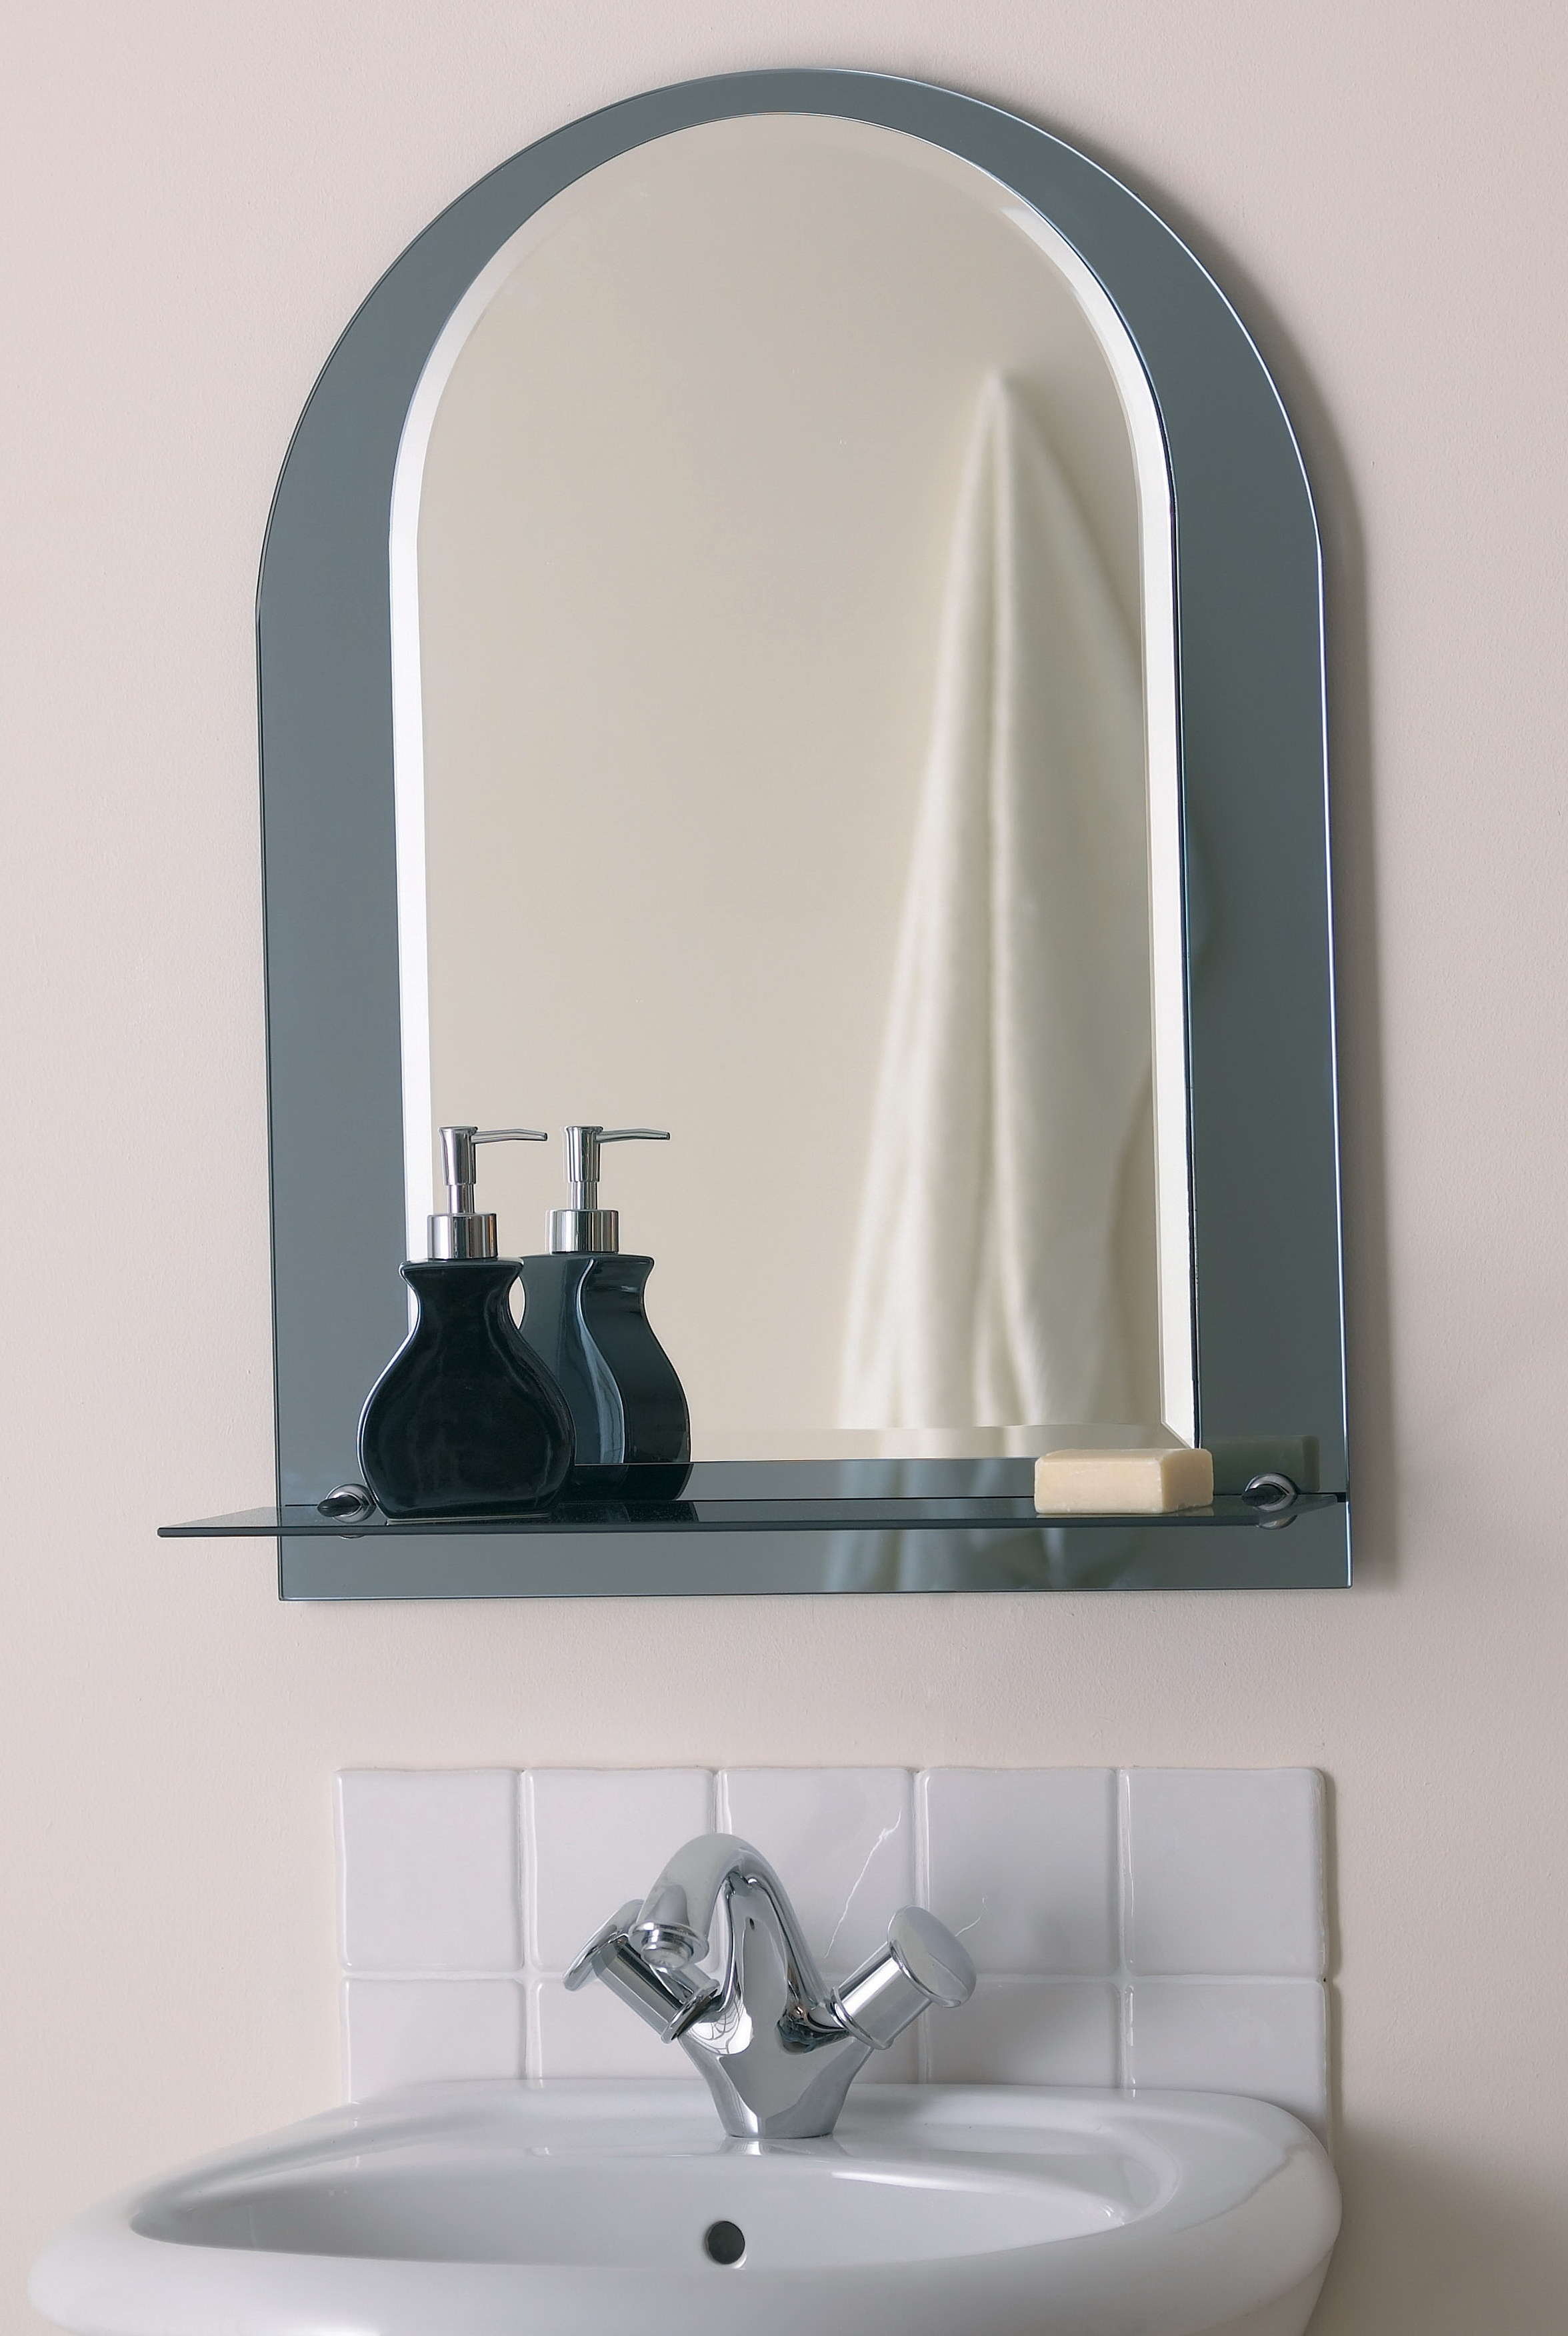 Bathroom Arched Lowes Bathroom Mirror With Shelf Attached For In Arched Mirrors Bathroom (Image 6 of 15)